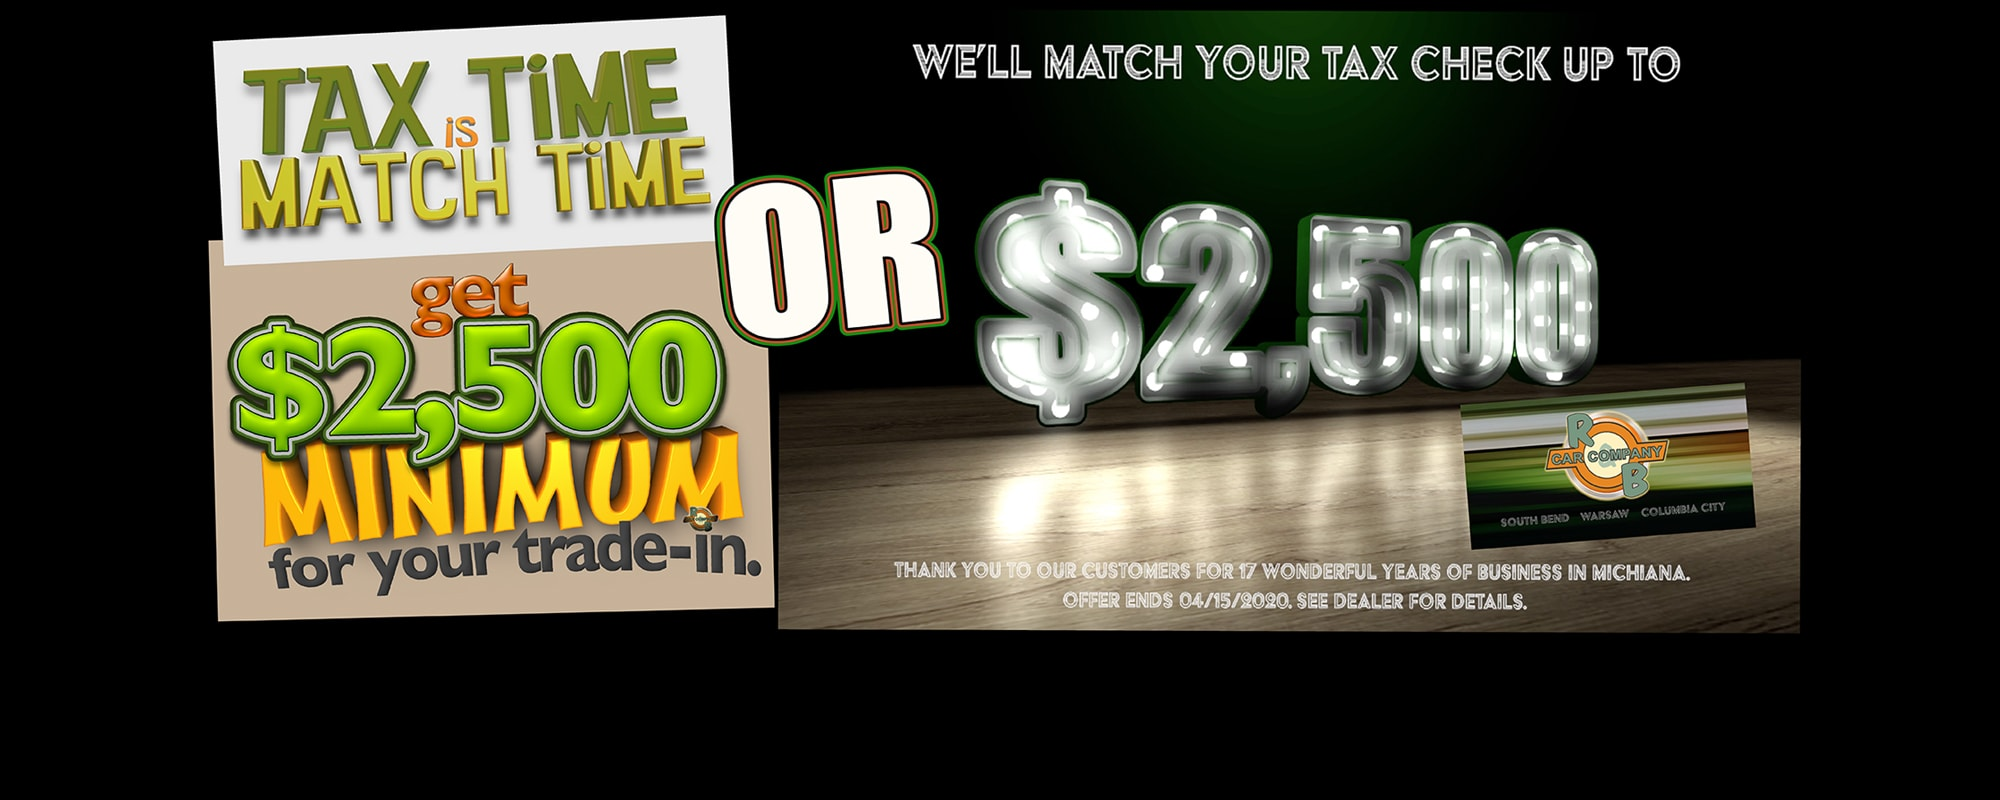 Tax Time Is Match Time - Get $2,500 Minimim for your trade-in Or We'll match your tax check up to $2,500